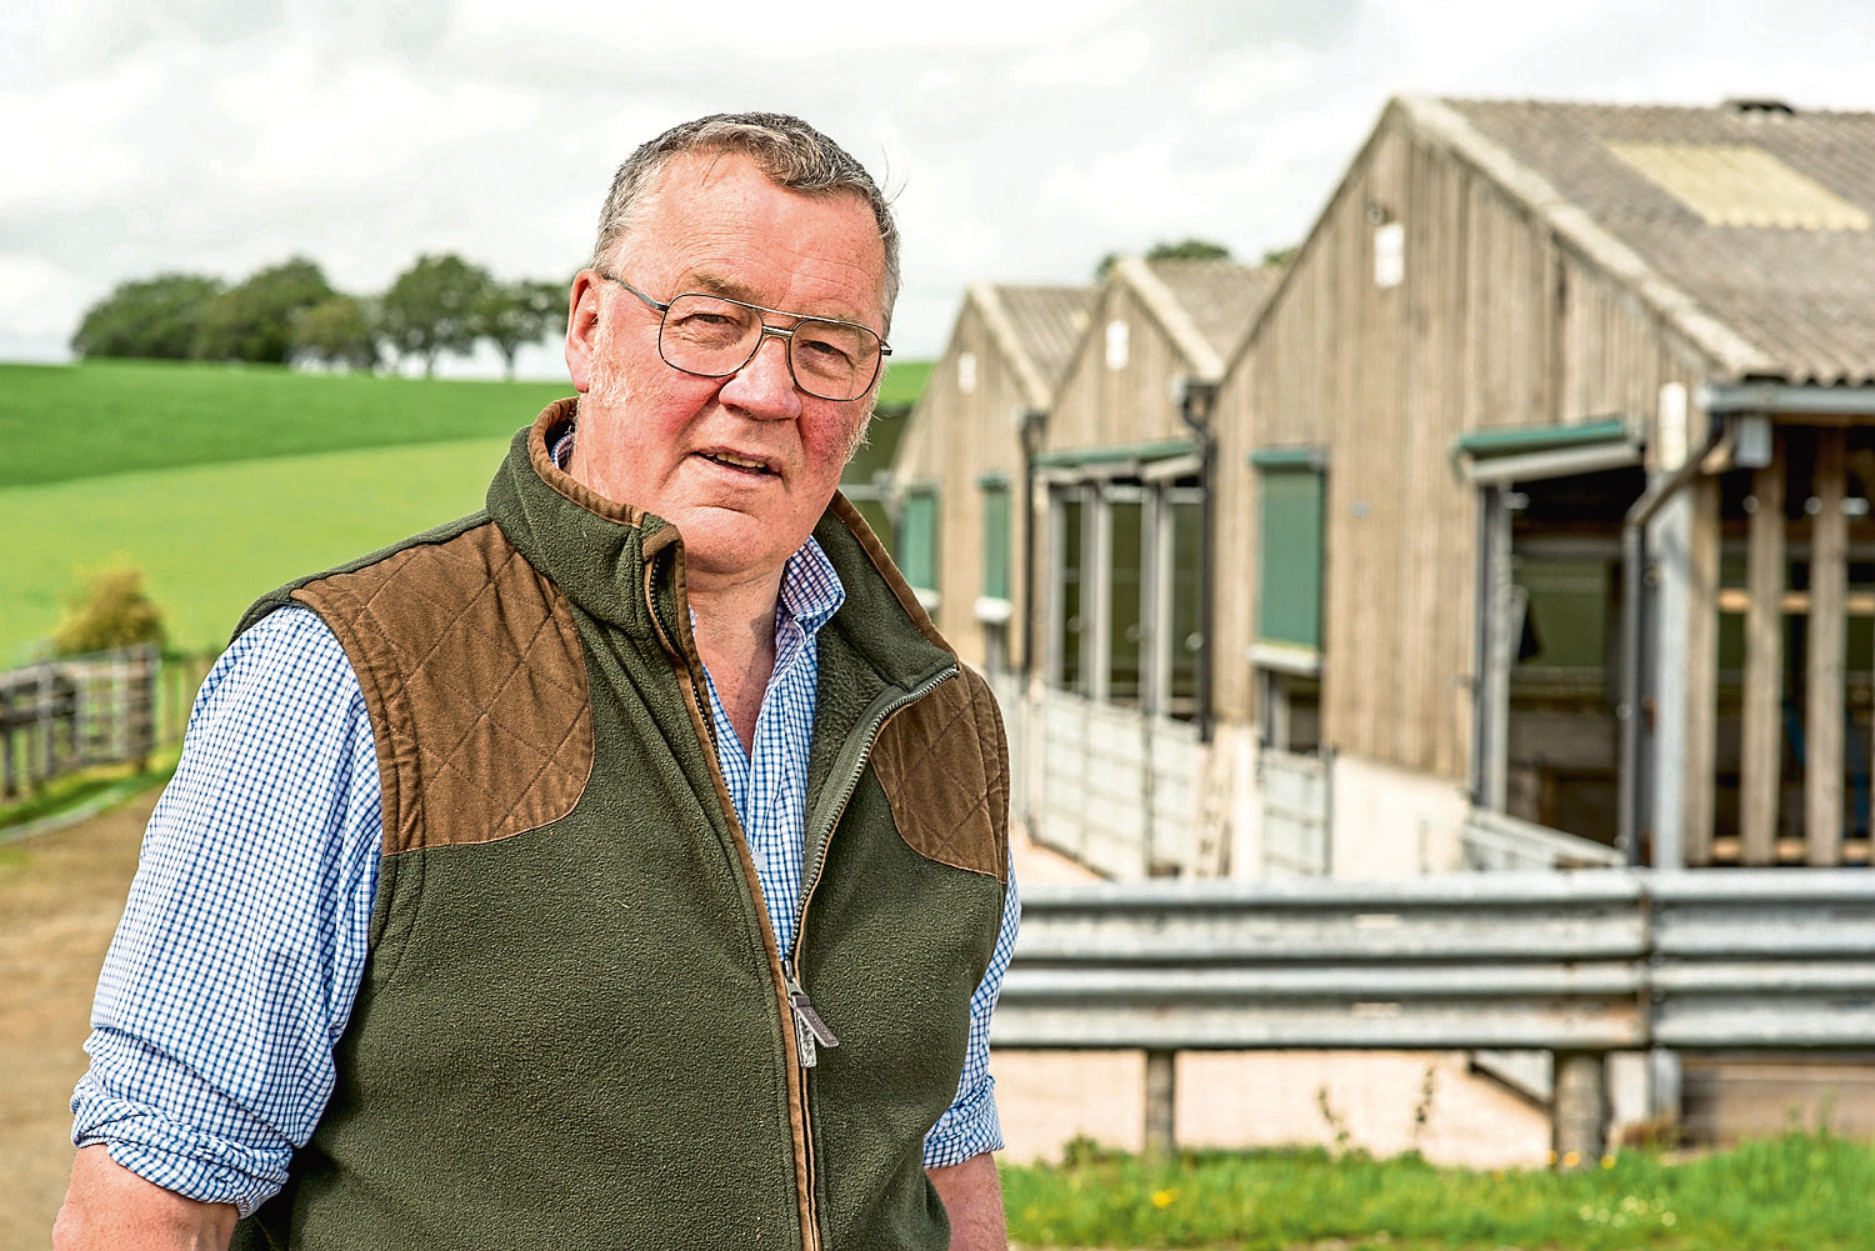 NFUS president Andrew McCornick said the supply of farm labour remains an issue.